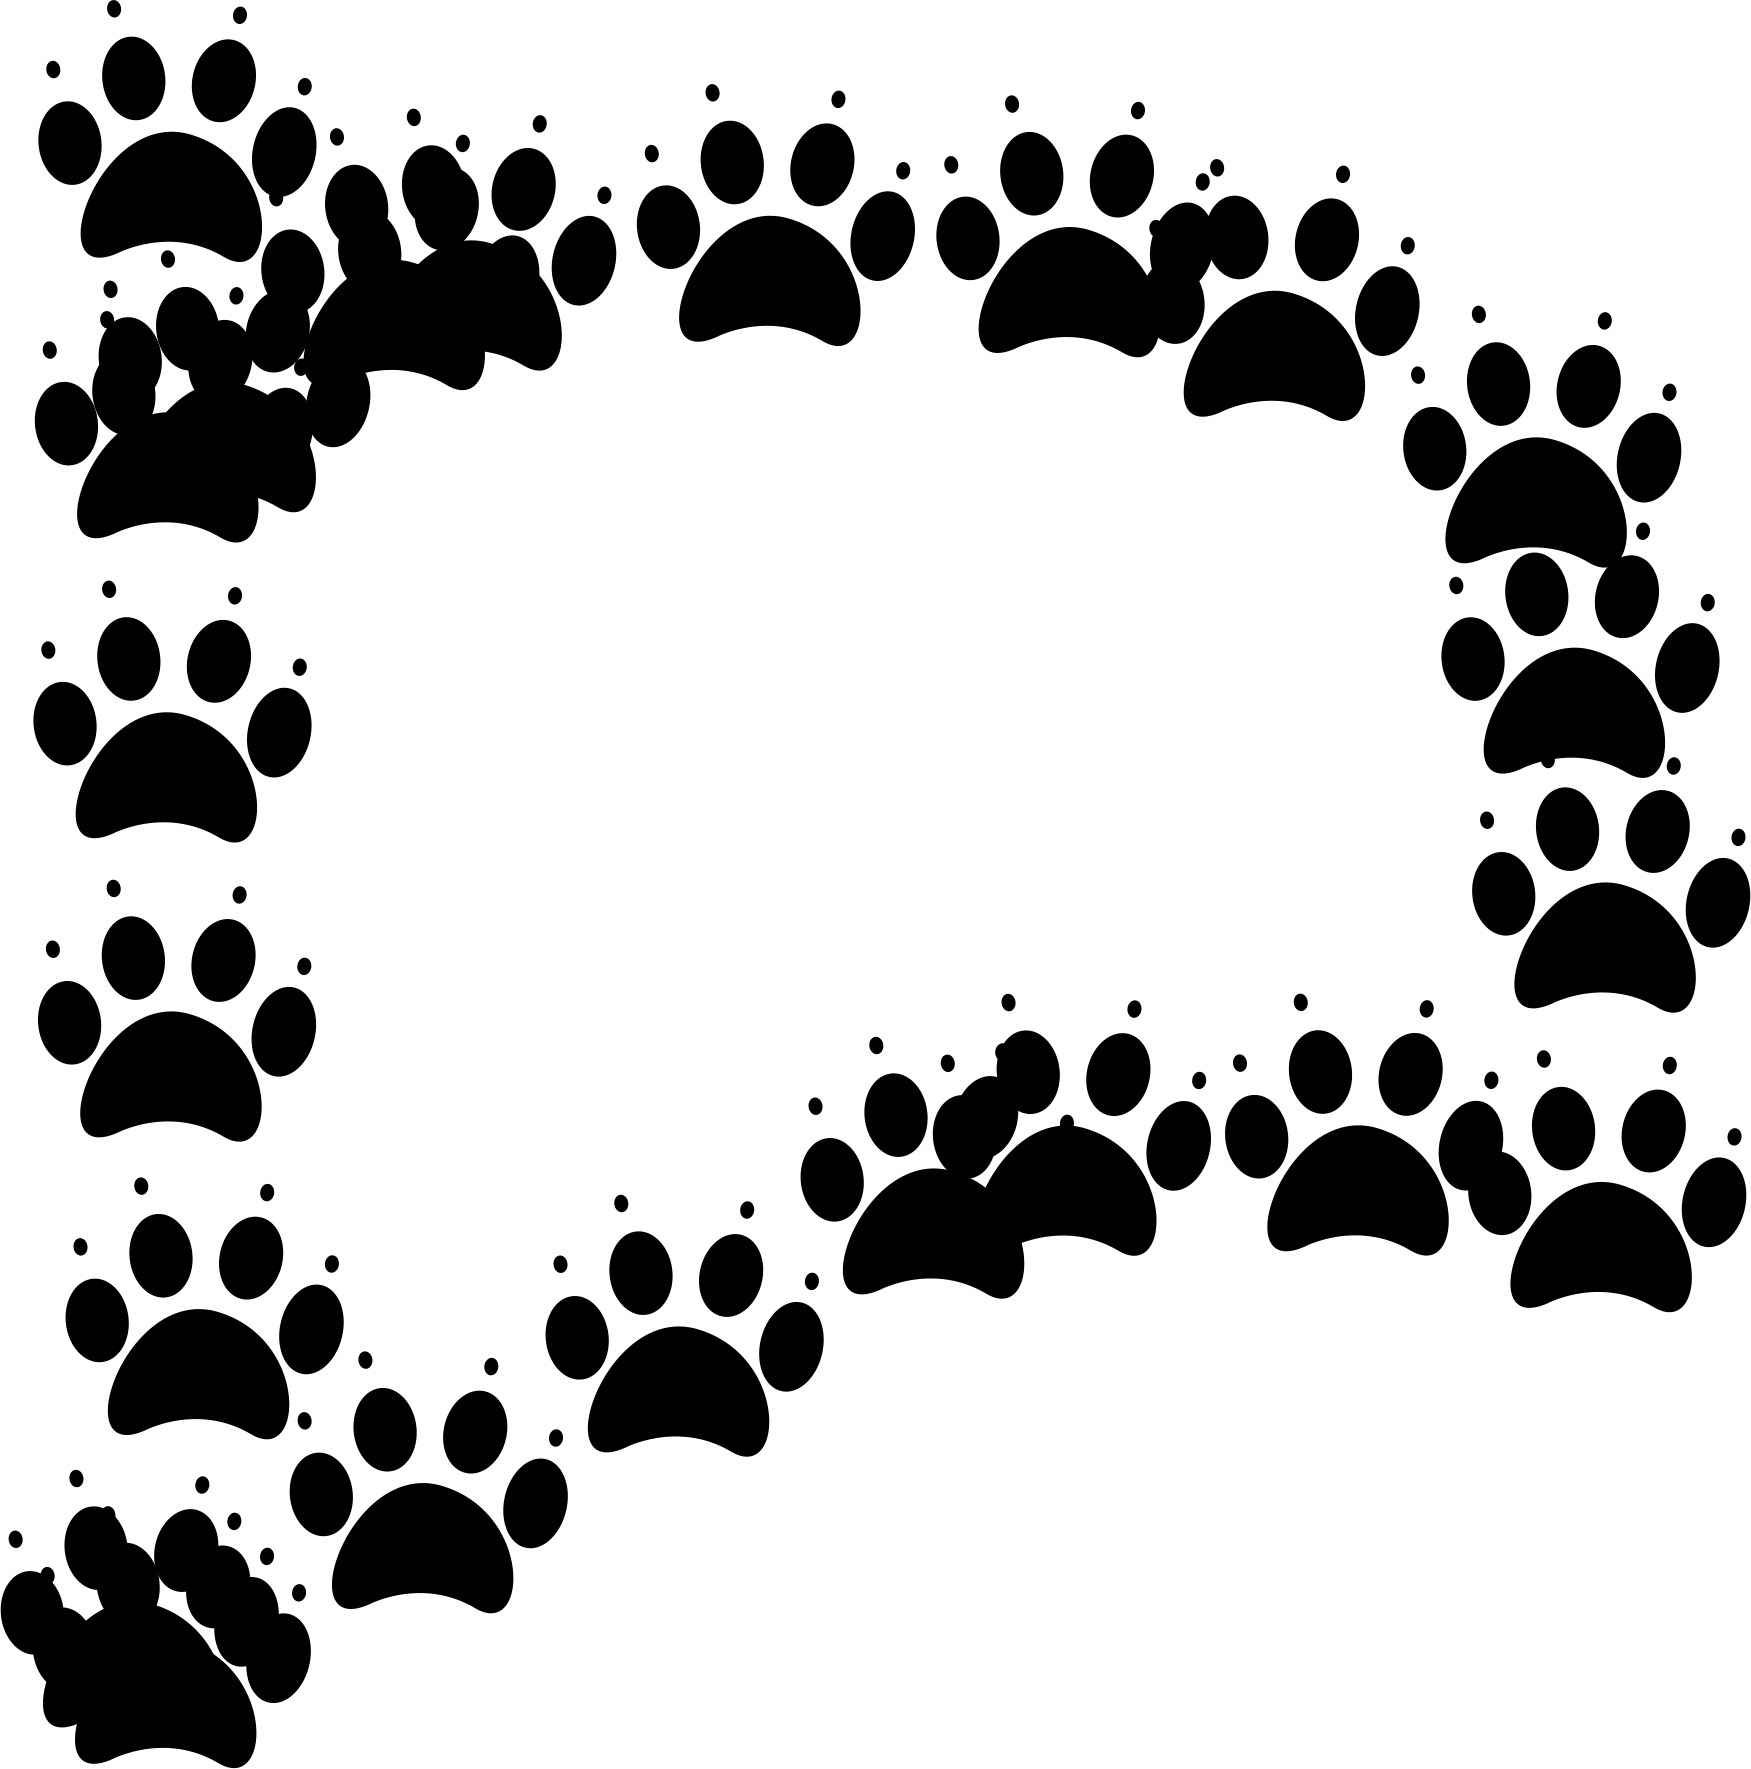 Pawprints Free Images At Clker